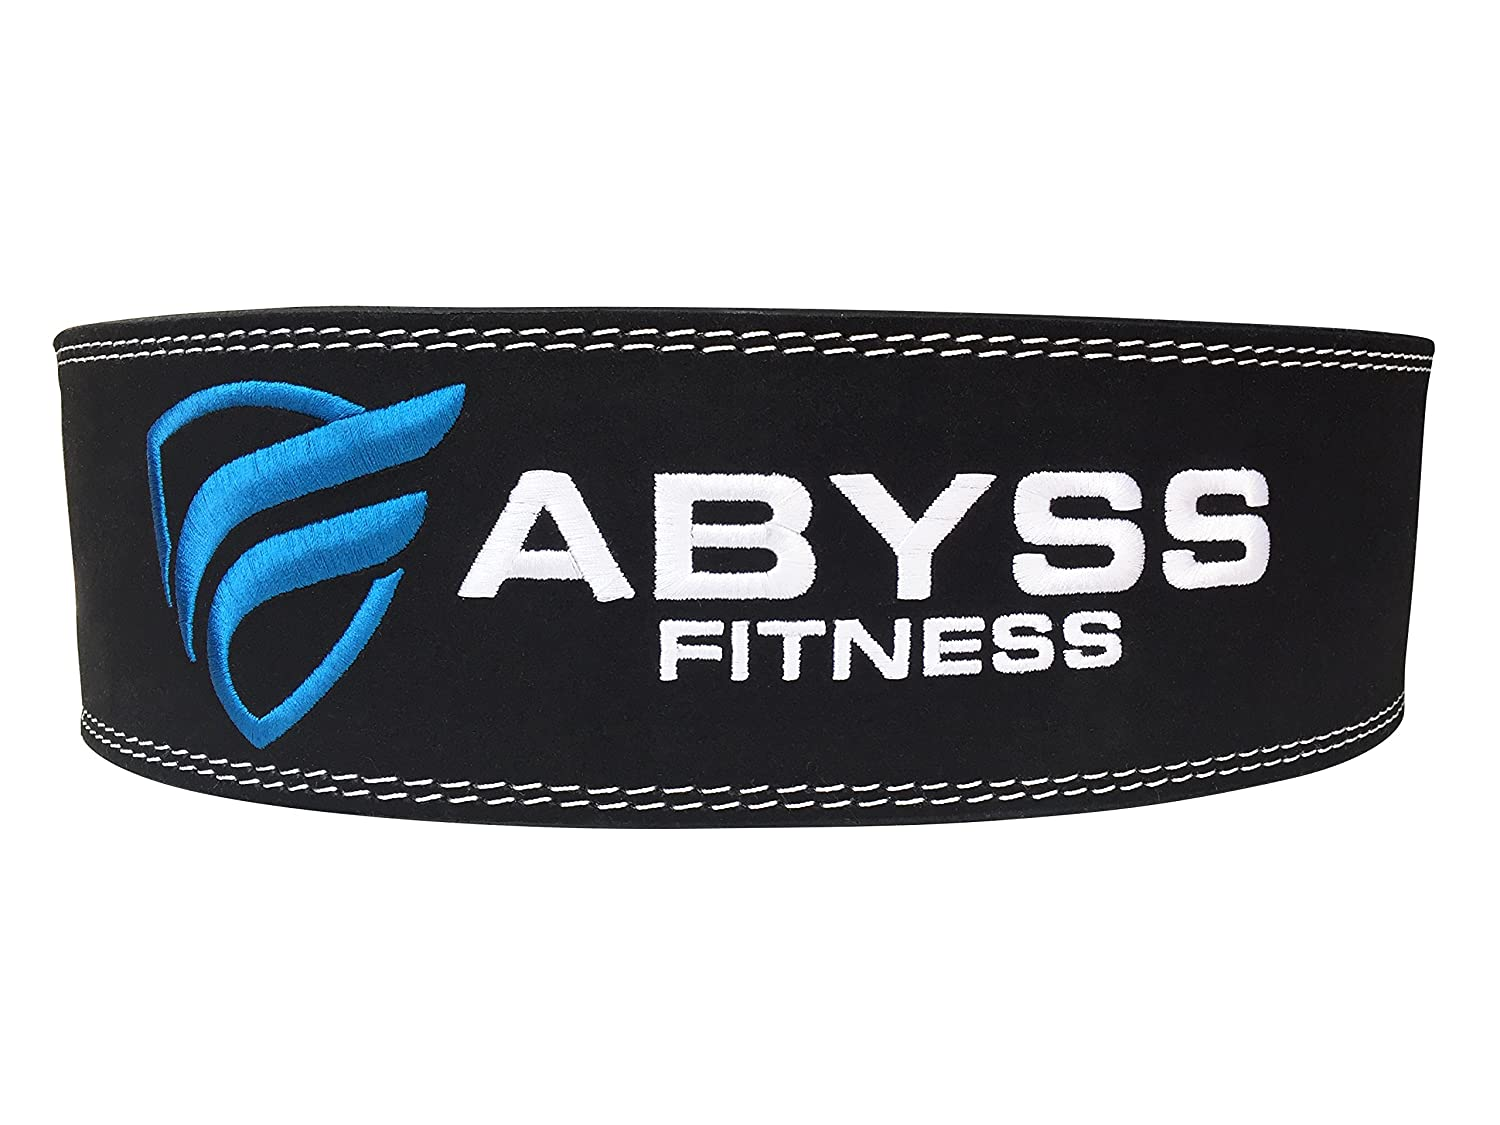 ABYSS FITNESS Genuine Leather Pro Weightlifting Belt for Men and Women Durable Comfortable Adjustable with Buckle Stabilizing Lower Back Support for Weightlifting 10 mm Powerlifting Belt